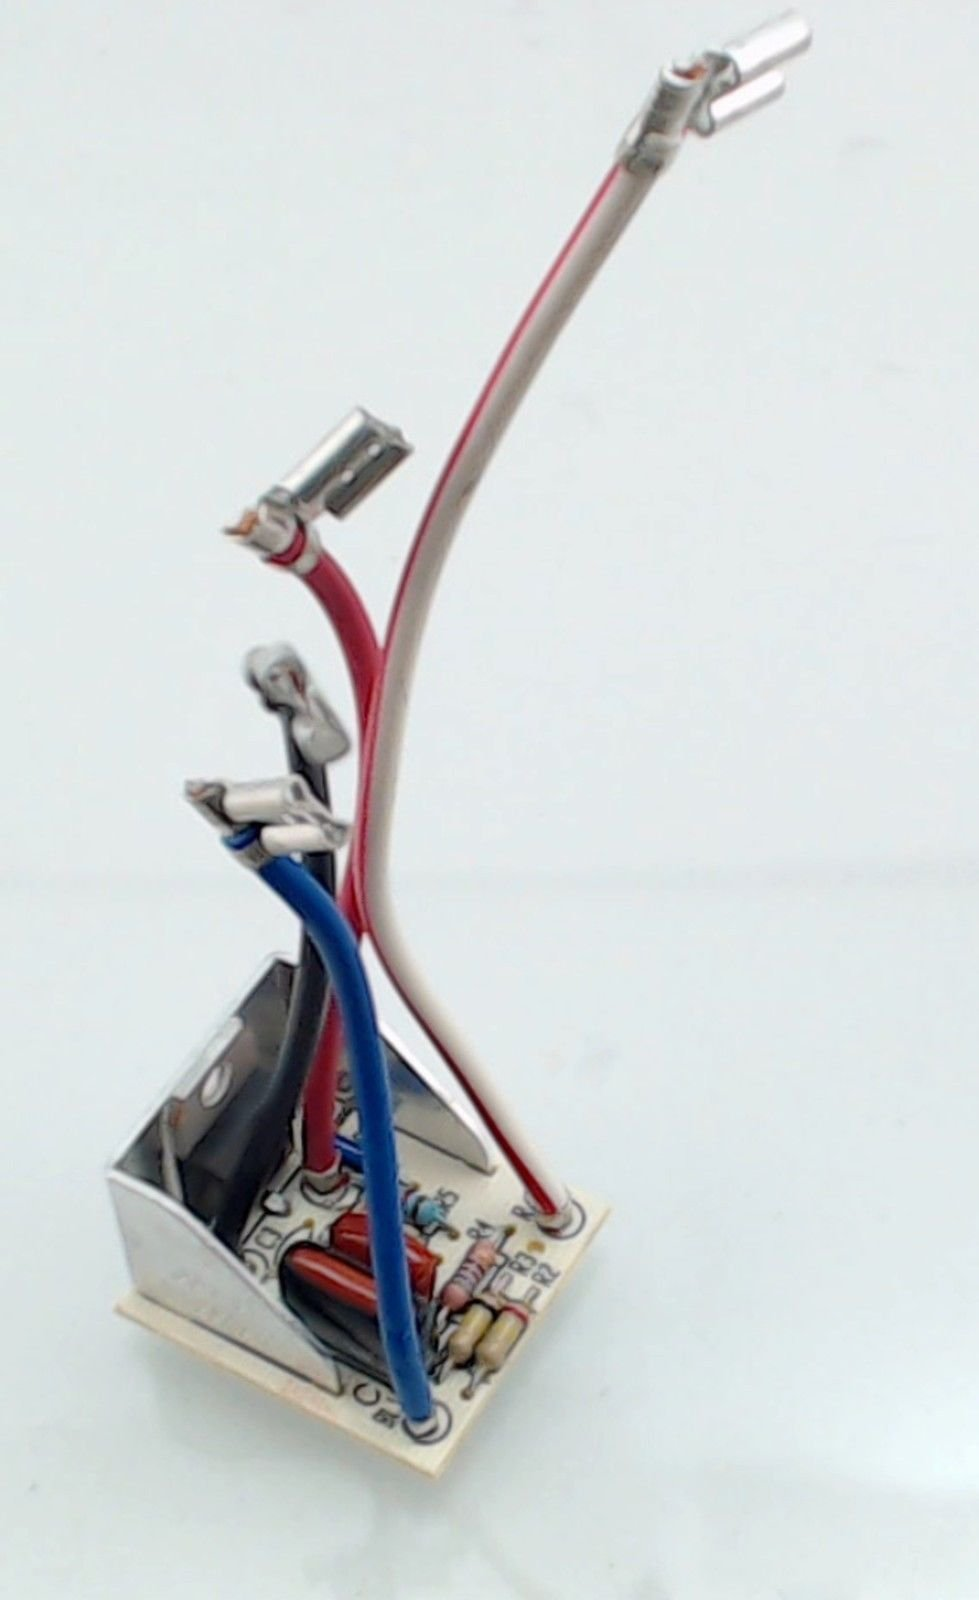 replaces KitchenAid ,AP4568339, PS11752886, WPW10325124 for Mixer Speed Phase Board 110V